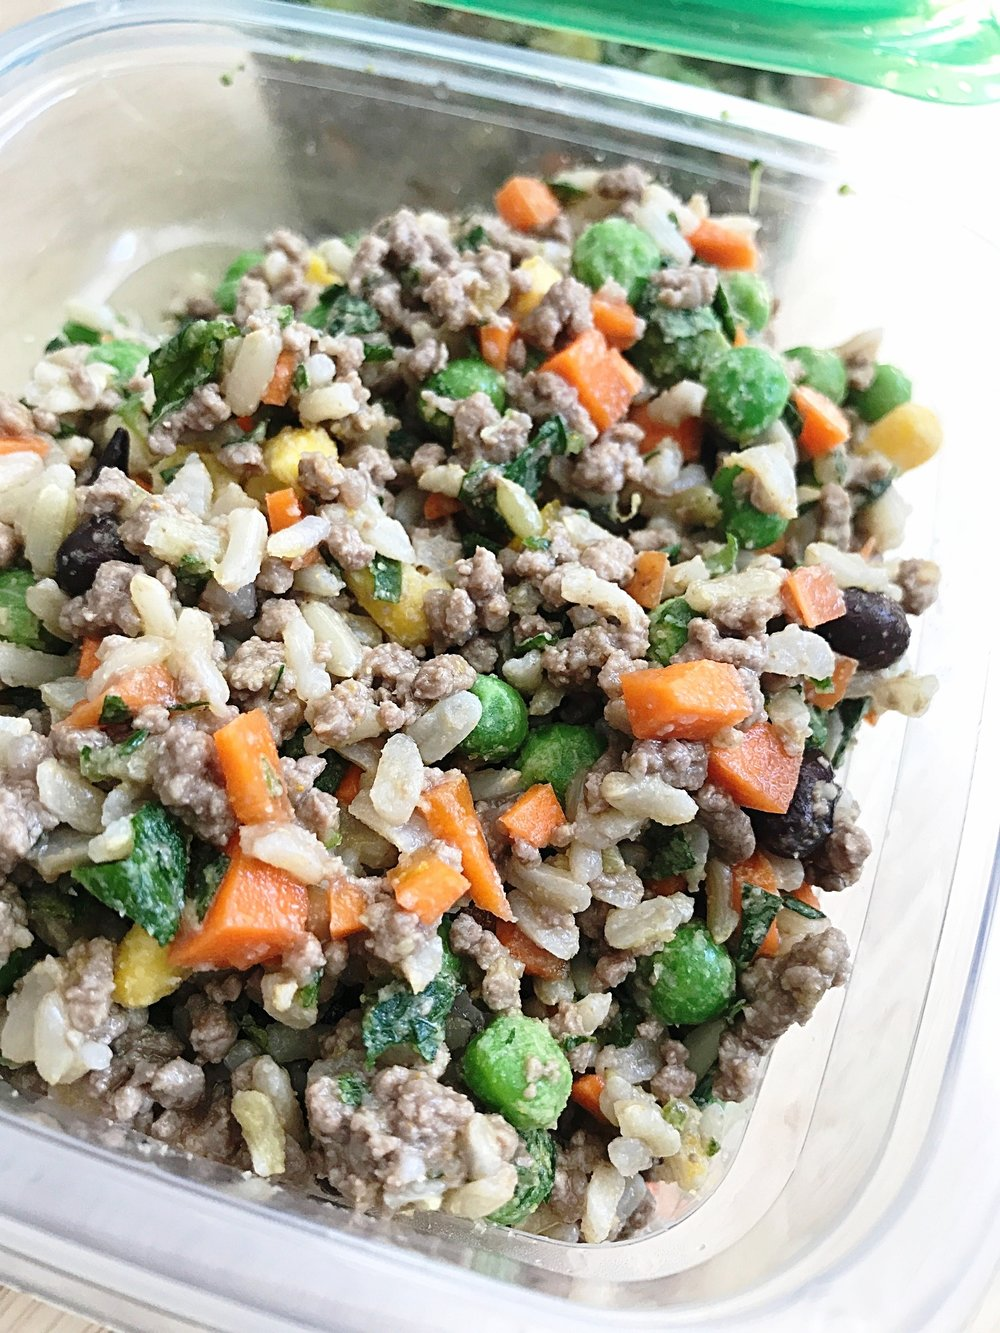 Ground beef, peas, carrots, parsley and brown rice.